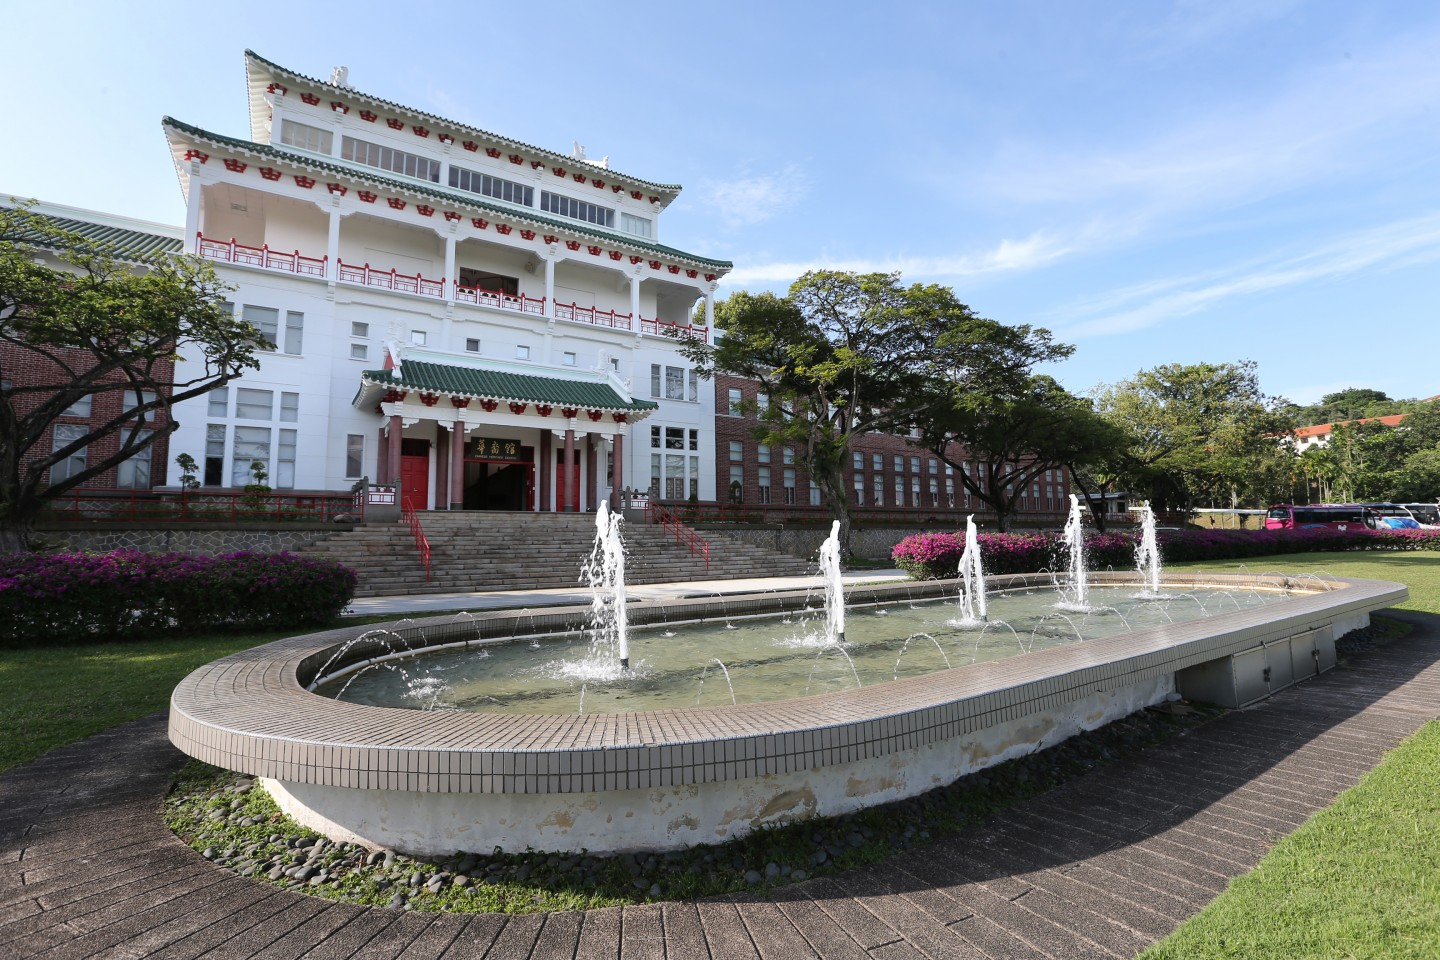 Living here, they get to experience Singapore first-hand, gaining an objective reality of Singapore that is relatively true. The photo shows the Nanyang Technological University's Yunnan Garden and Chinese Heritage Centre, portraying its rich culture and history. (SPH)